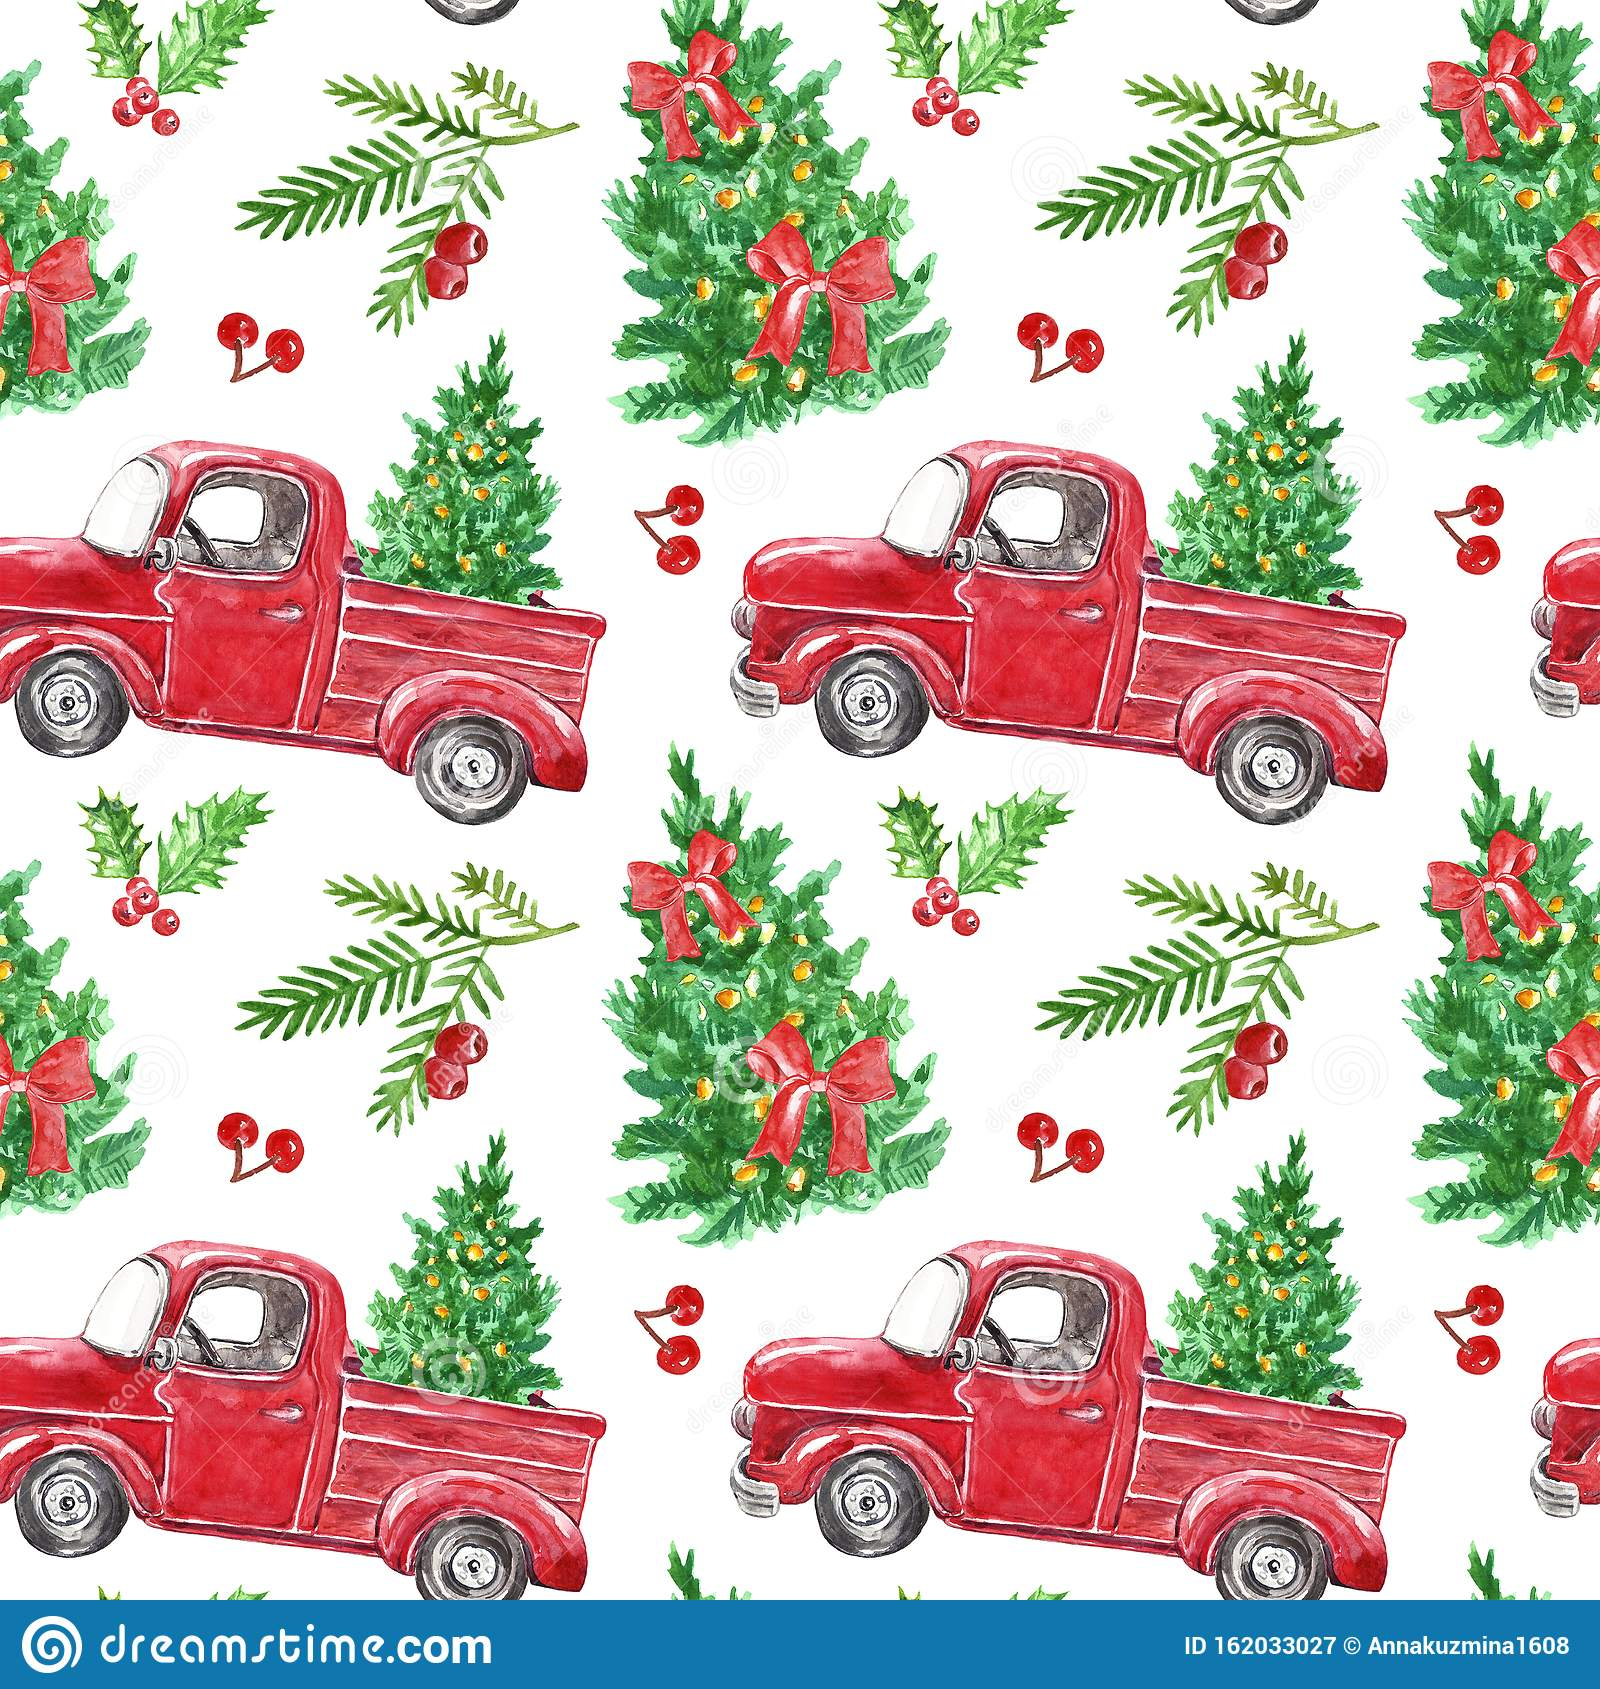 watercolor christmas seamless pattern red truck fir tree holly berries greenery branches white background festive vintage 162033027